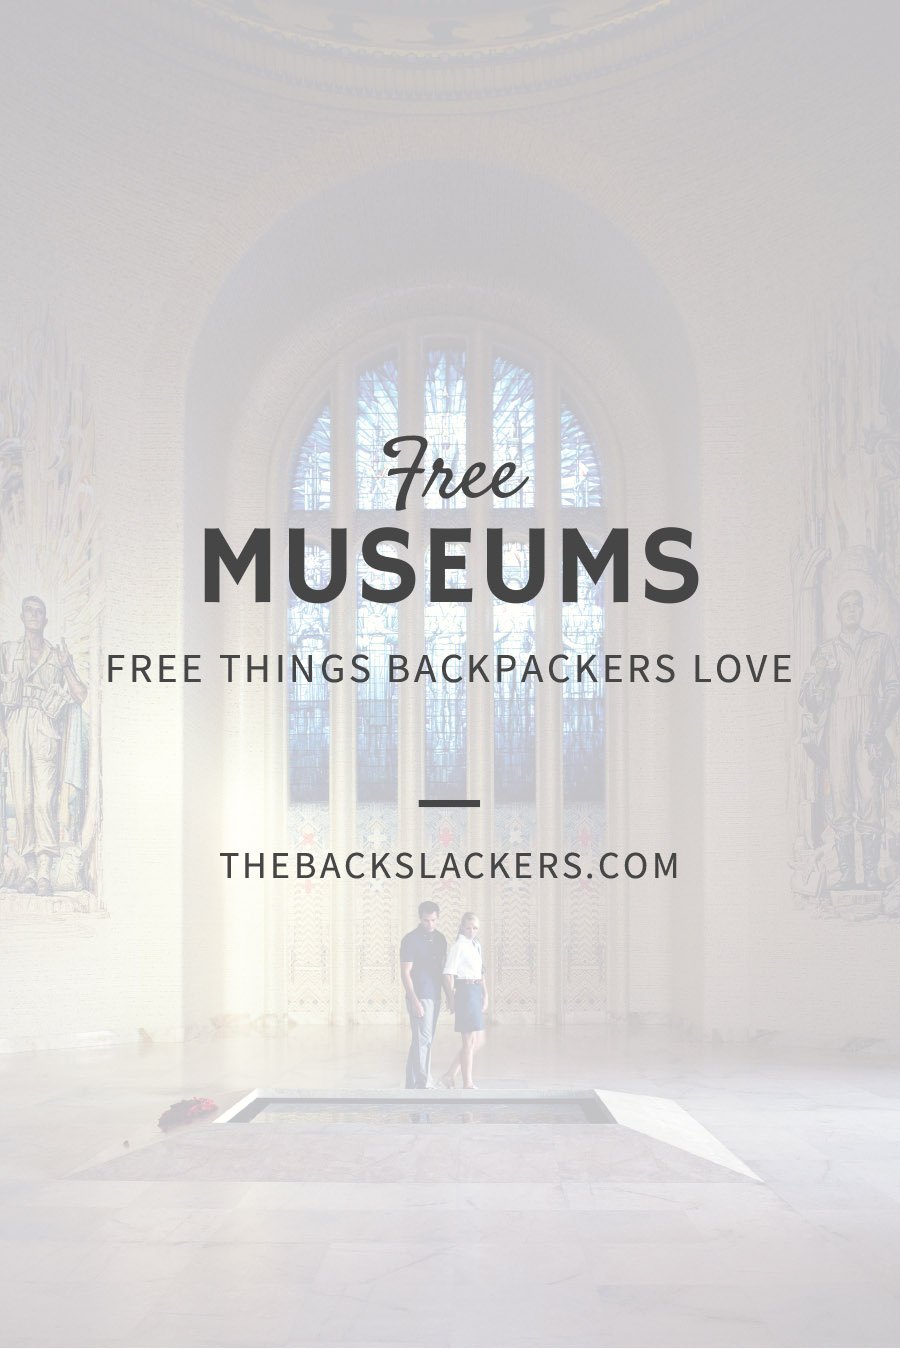 Free Things Backpackers Love - FREE MUSEUMS